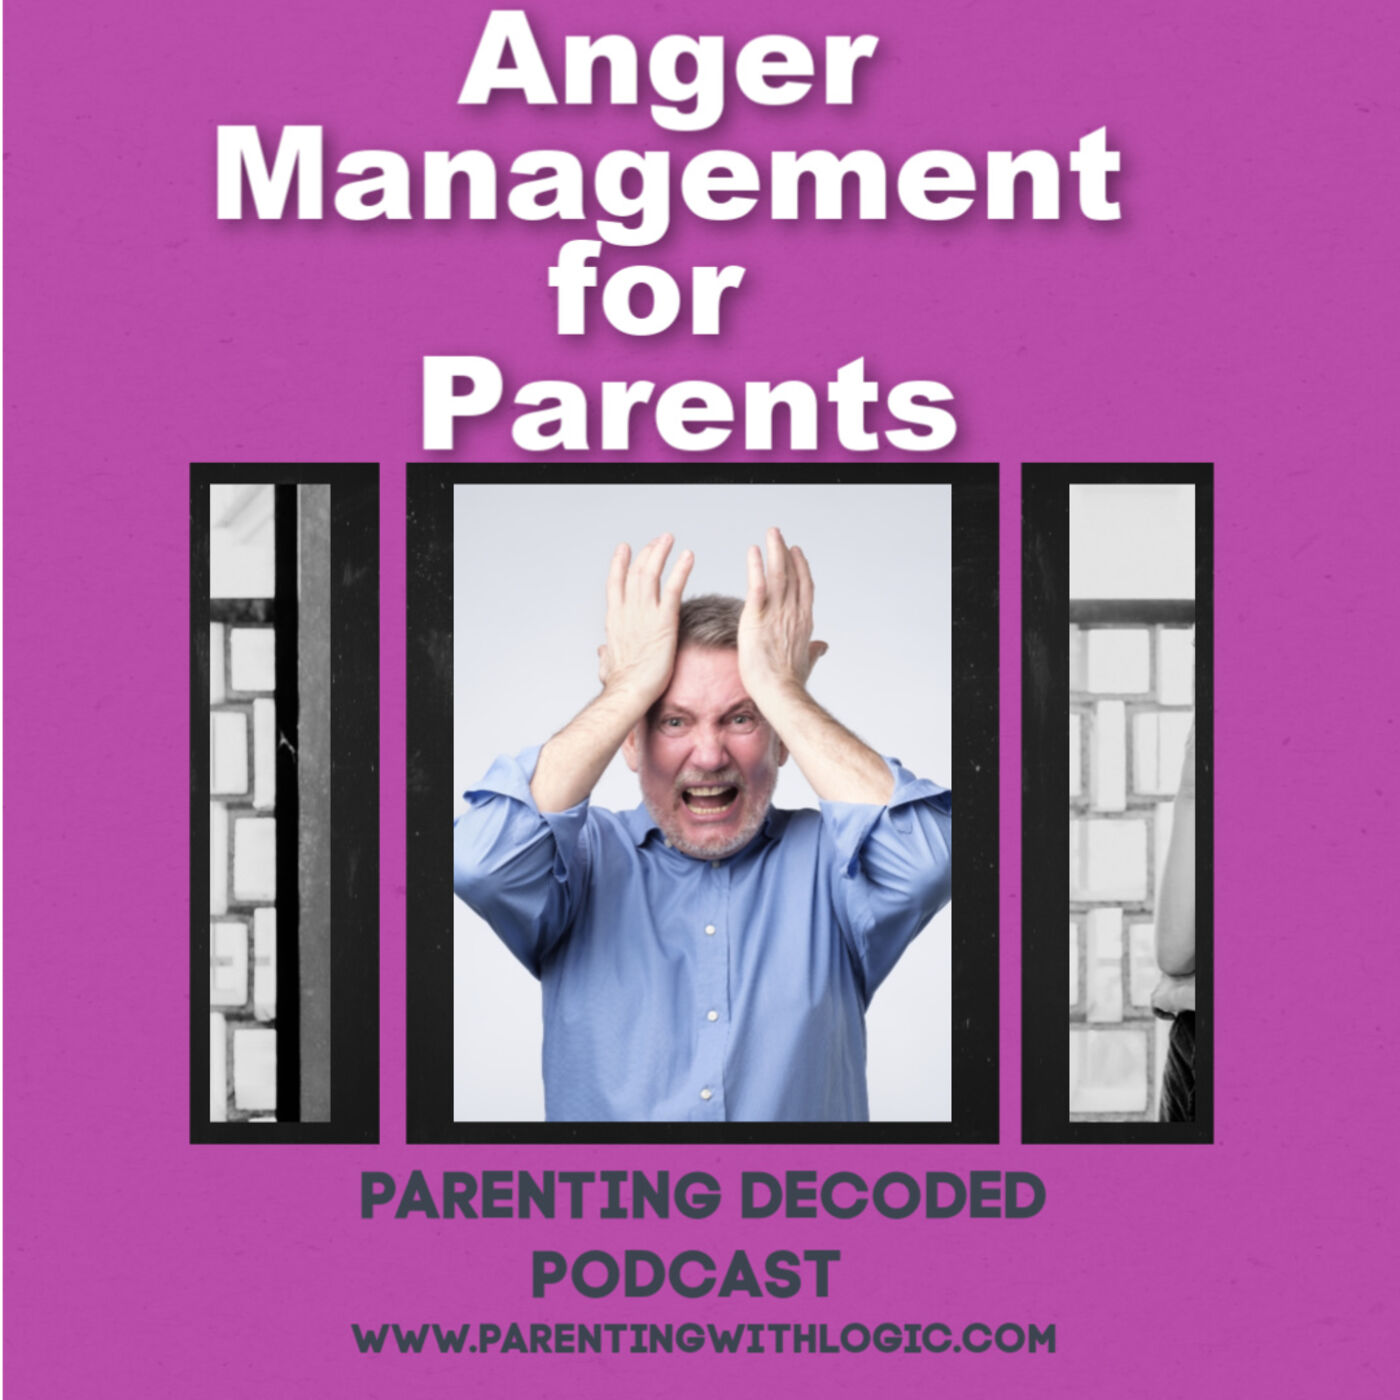 13 - Anger Management for Parents